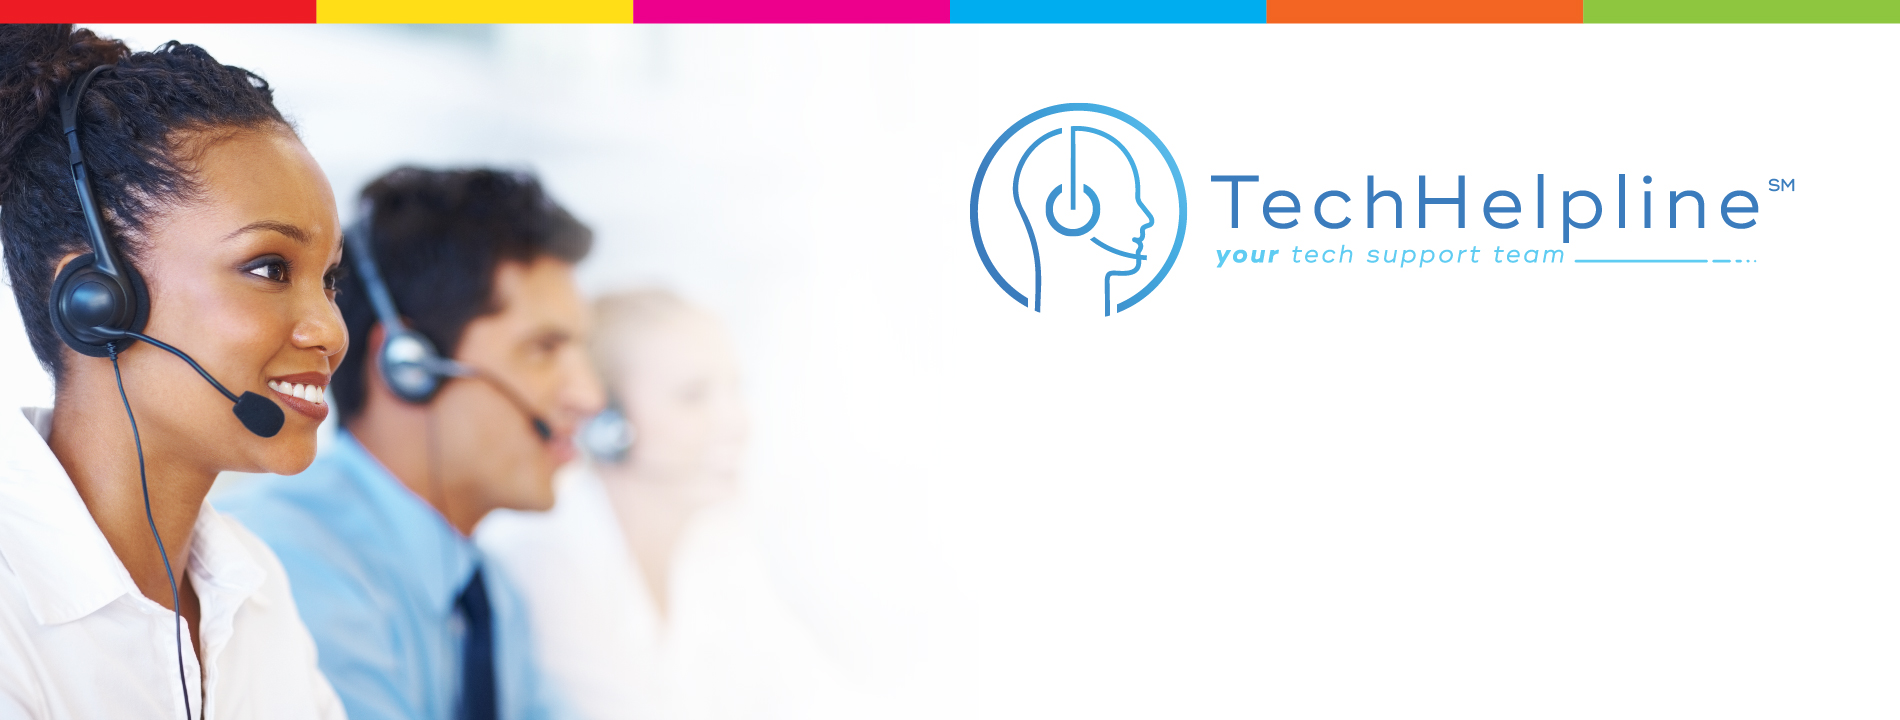 Tech Helpline Website Slider